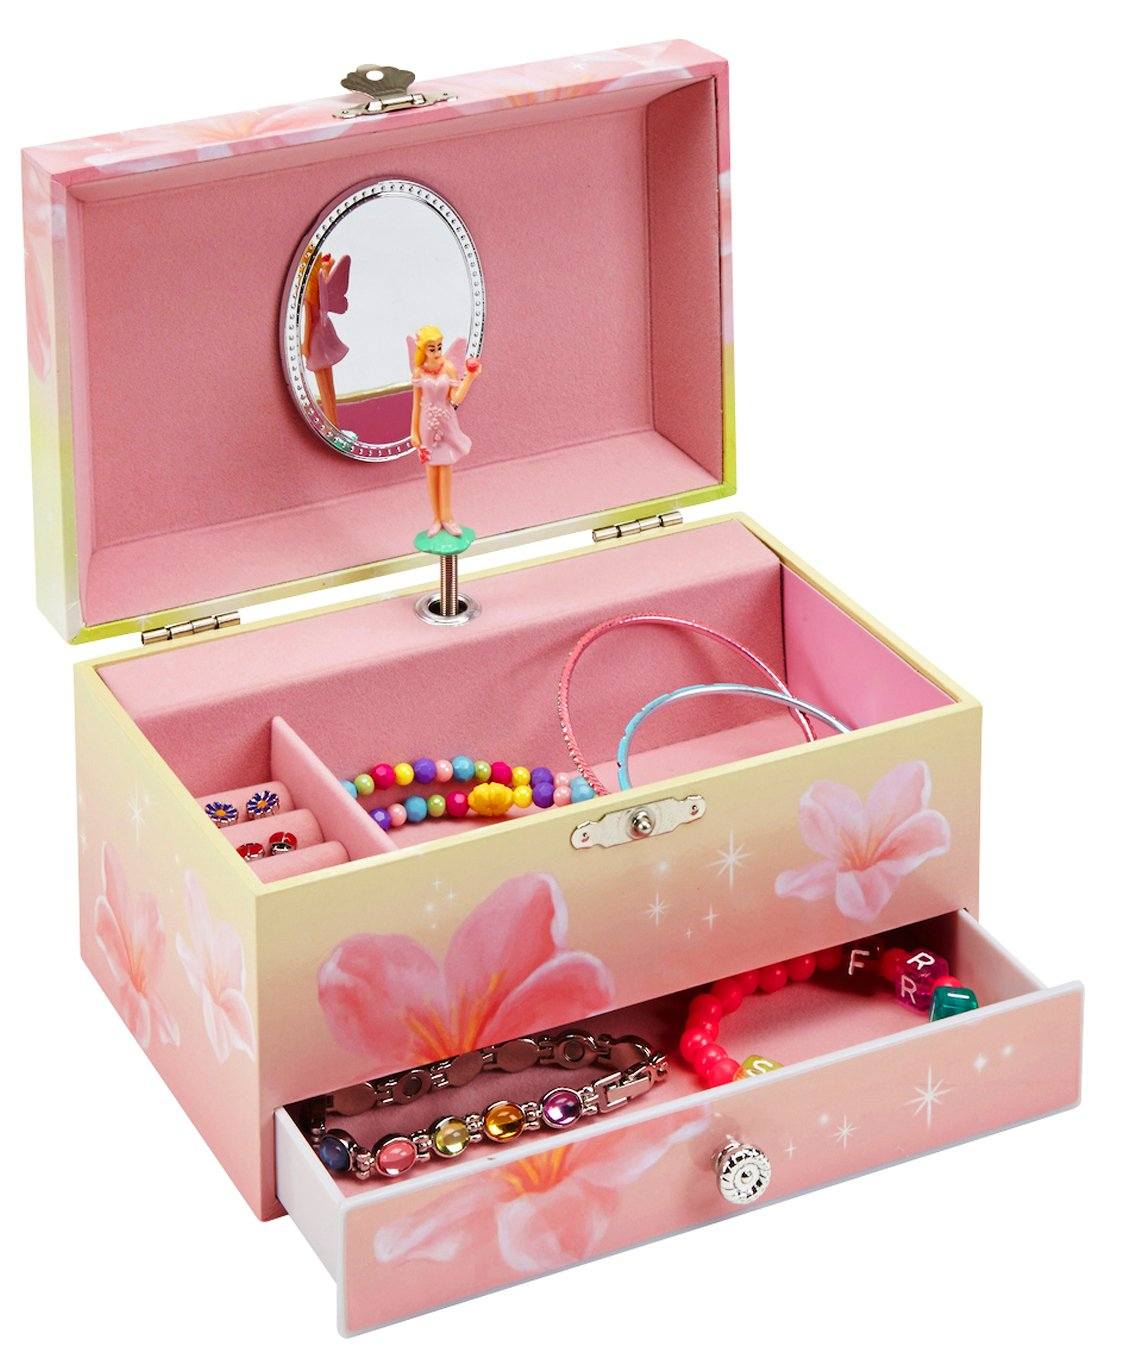 JewelKeeper Girl's Musical Jewelry Storage Box Pullout Drawer, Rainbow Unicorn Design,Somewhere Over The Rainbow Tune